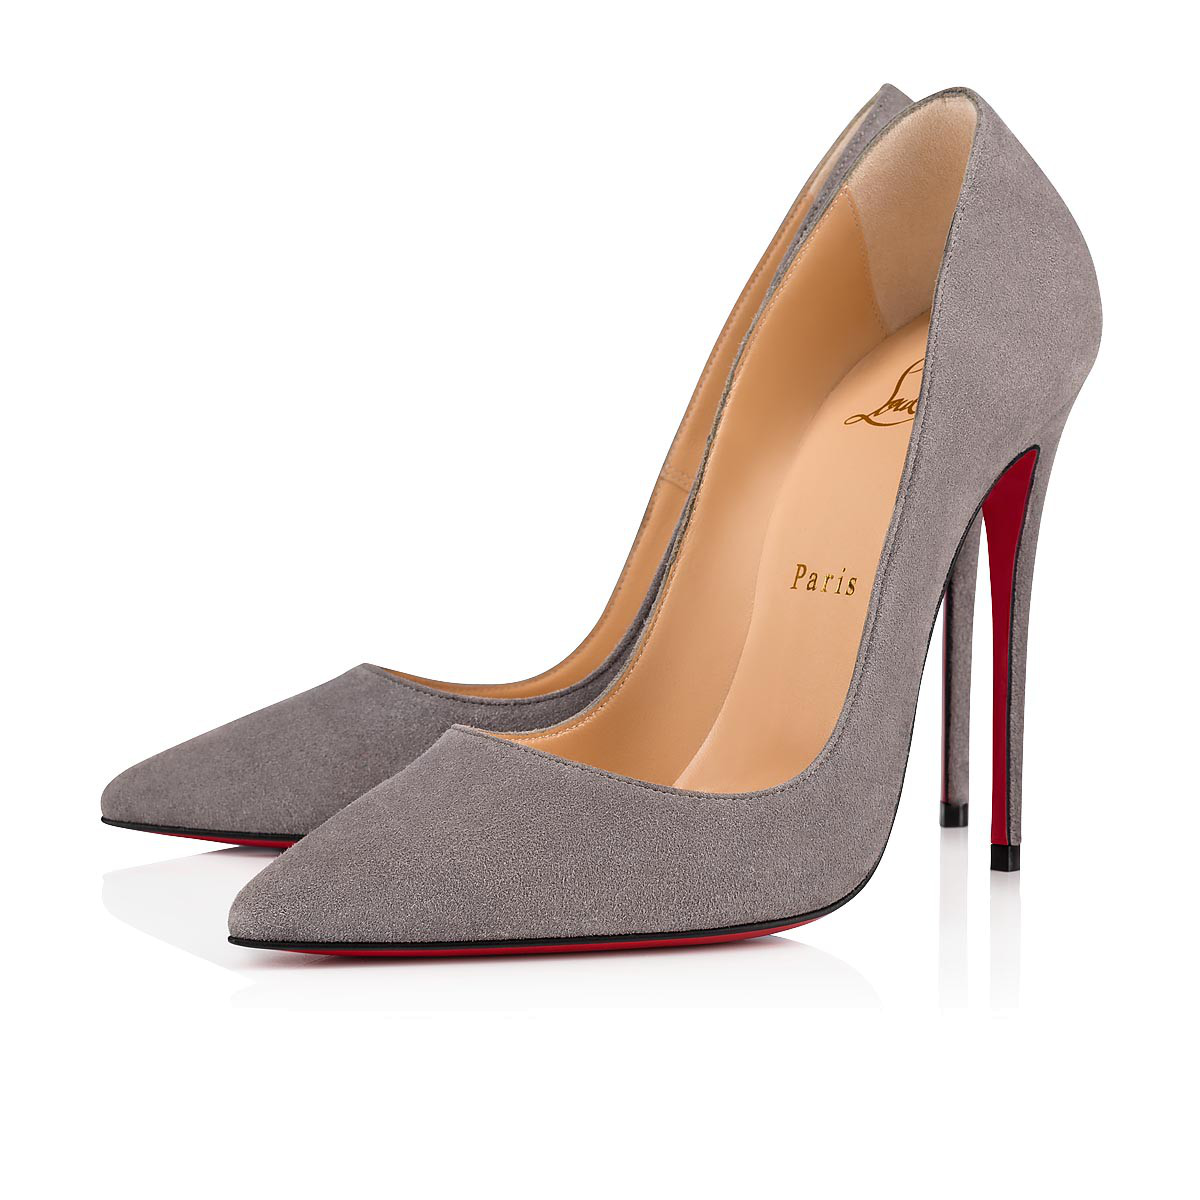 0d380588bfb Corneille Suede Red Sole Pumps in Shadow